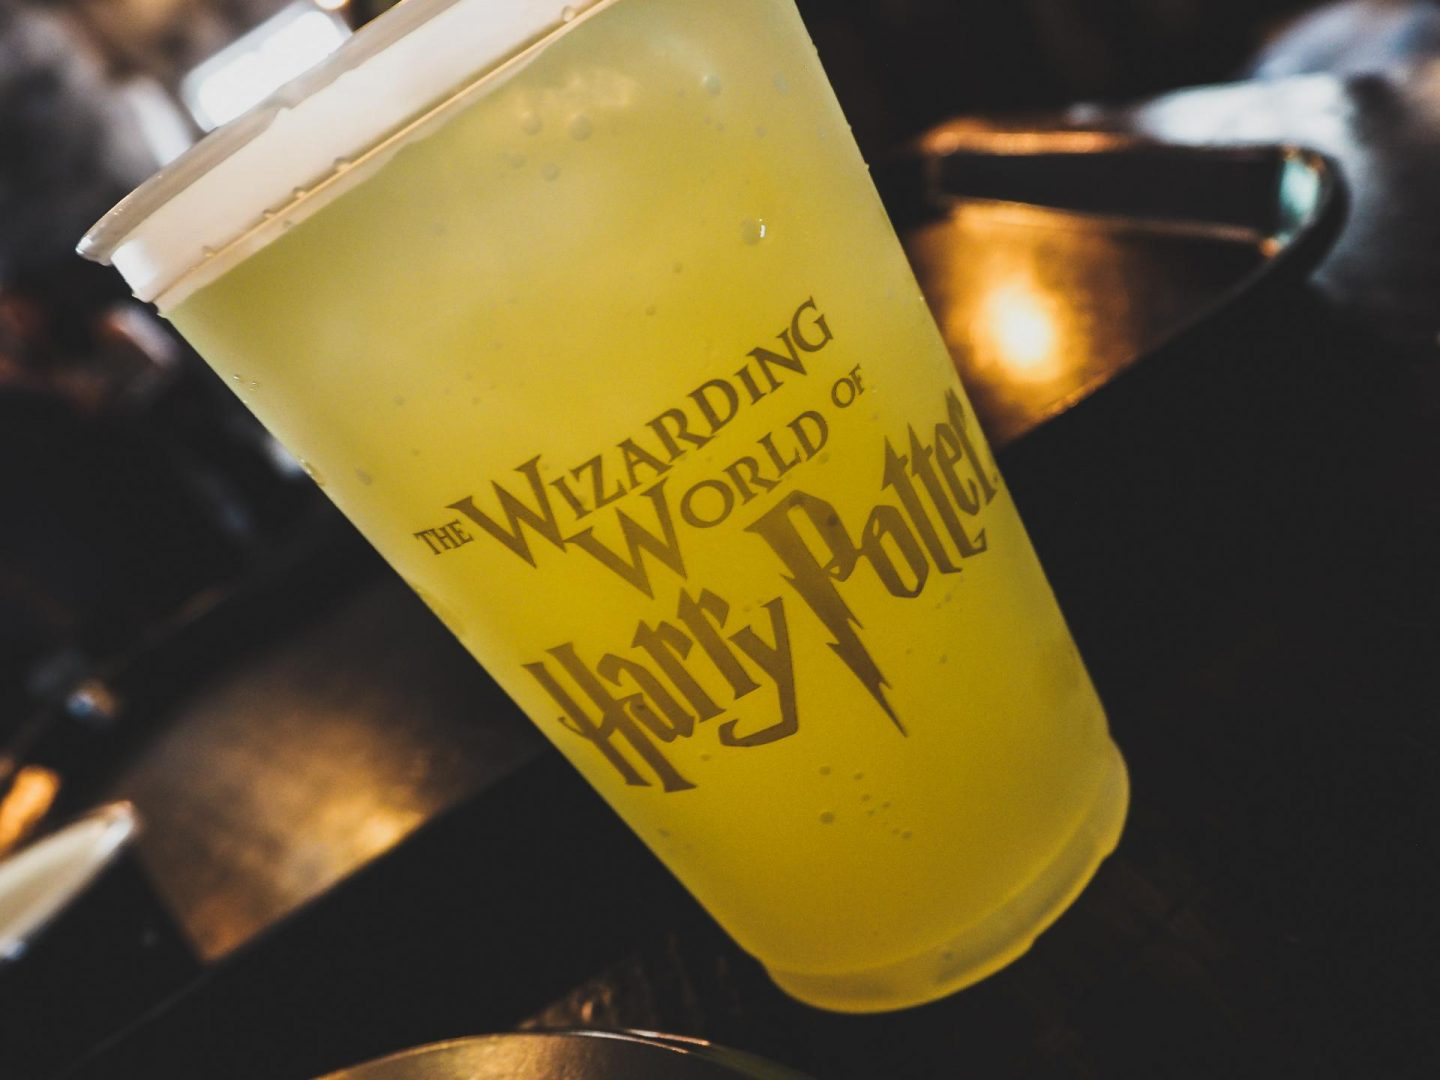 Eating at the Wizarding World of Harry Potter at Universal Studios, Hollywood with Attractiontix - Rachel Nicole UK Blogger